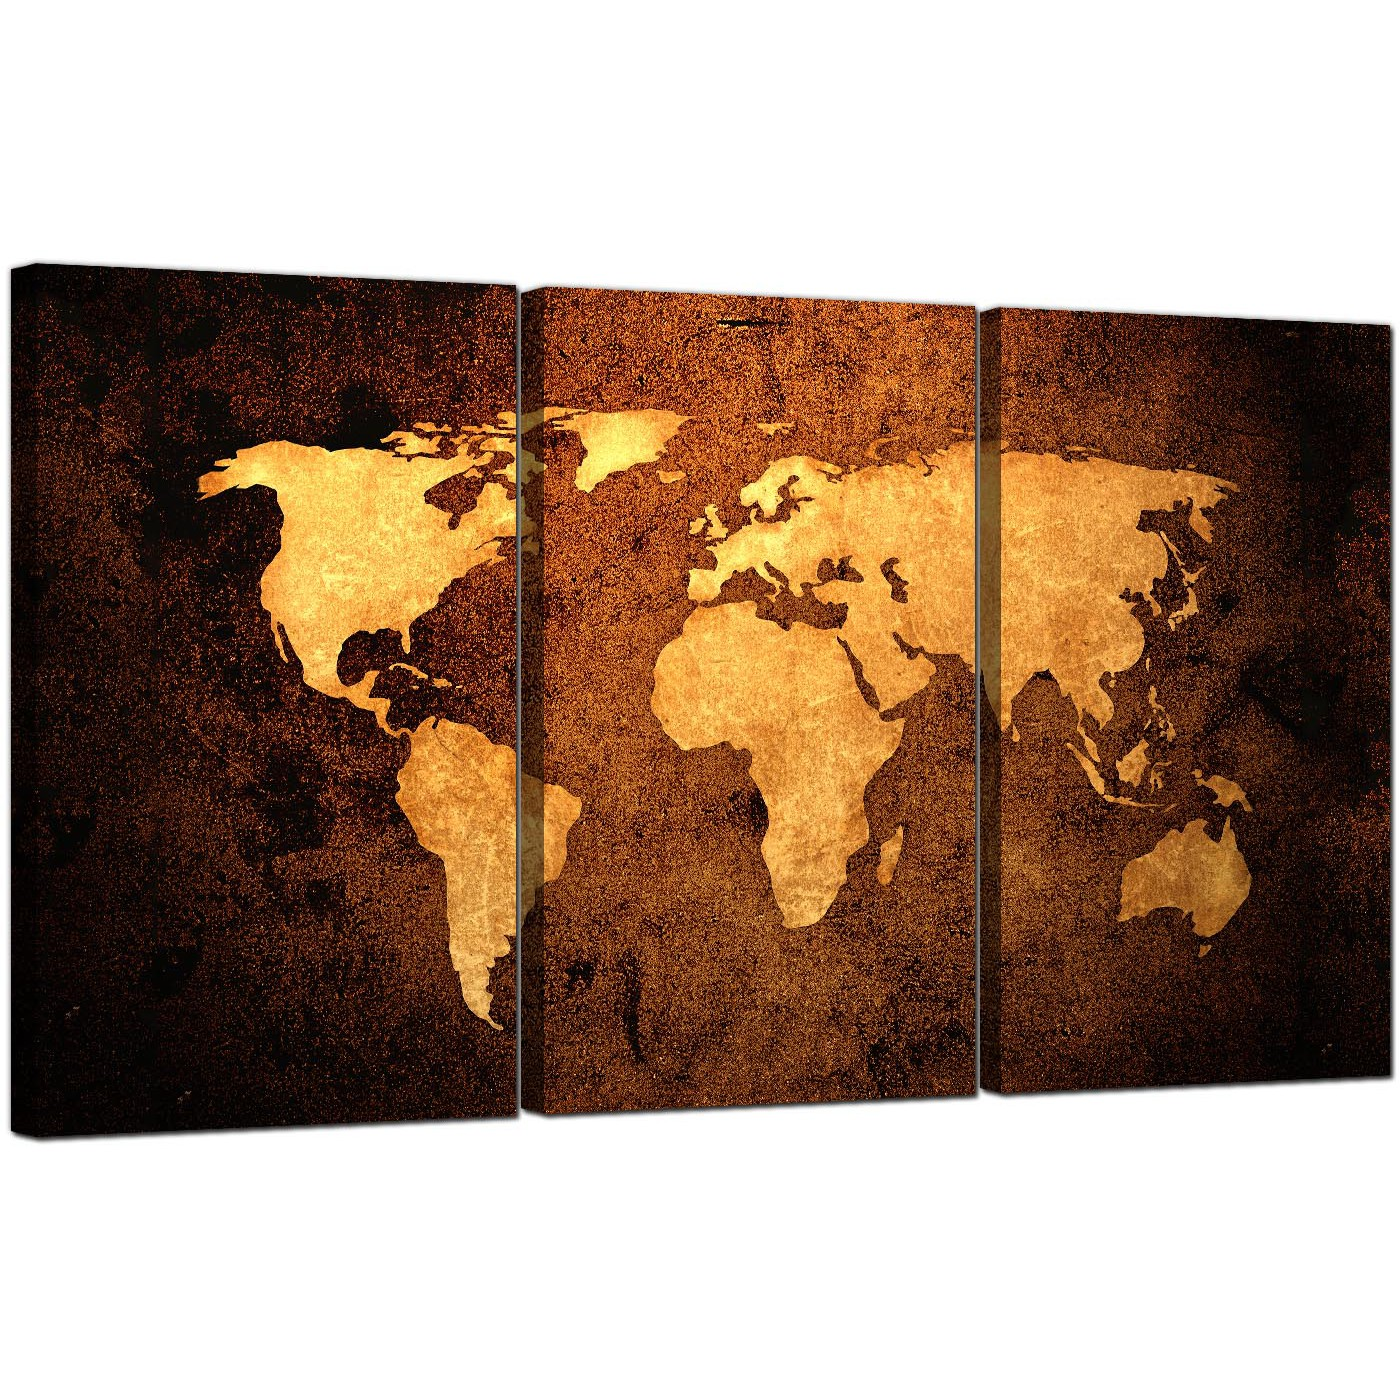 Vintage world map canvas wall art set of 3 for your bedroom 24x36 vintage world map canvas wall art set of 3 for your bedroom gumiabroncs Choice Image